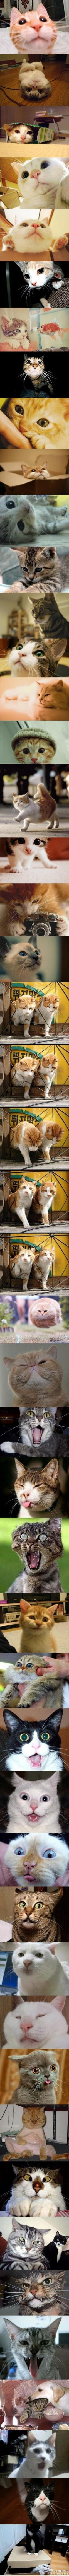 KITTEHS!: Kitty Cats, Kitty Faces, Cats 3, Funny Cats, Crazy Cat, Cat Faces, Cat Lady, Animal